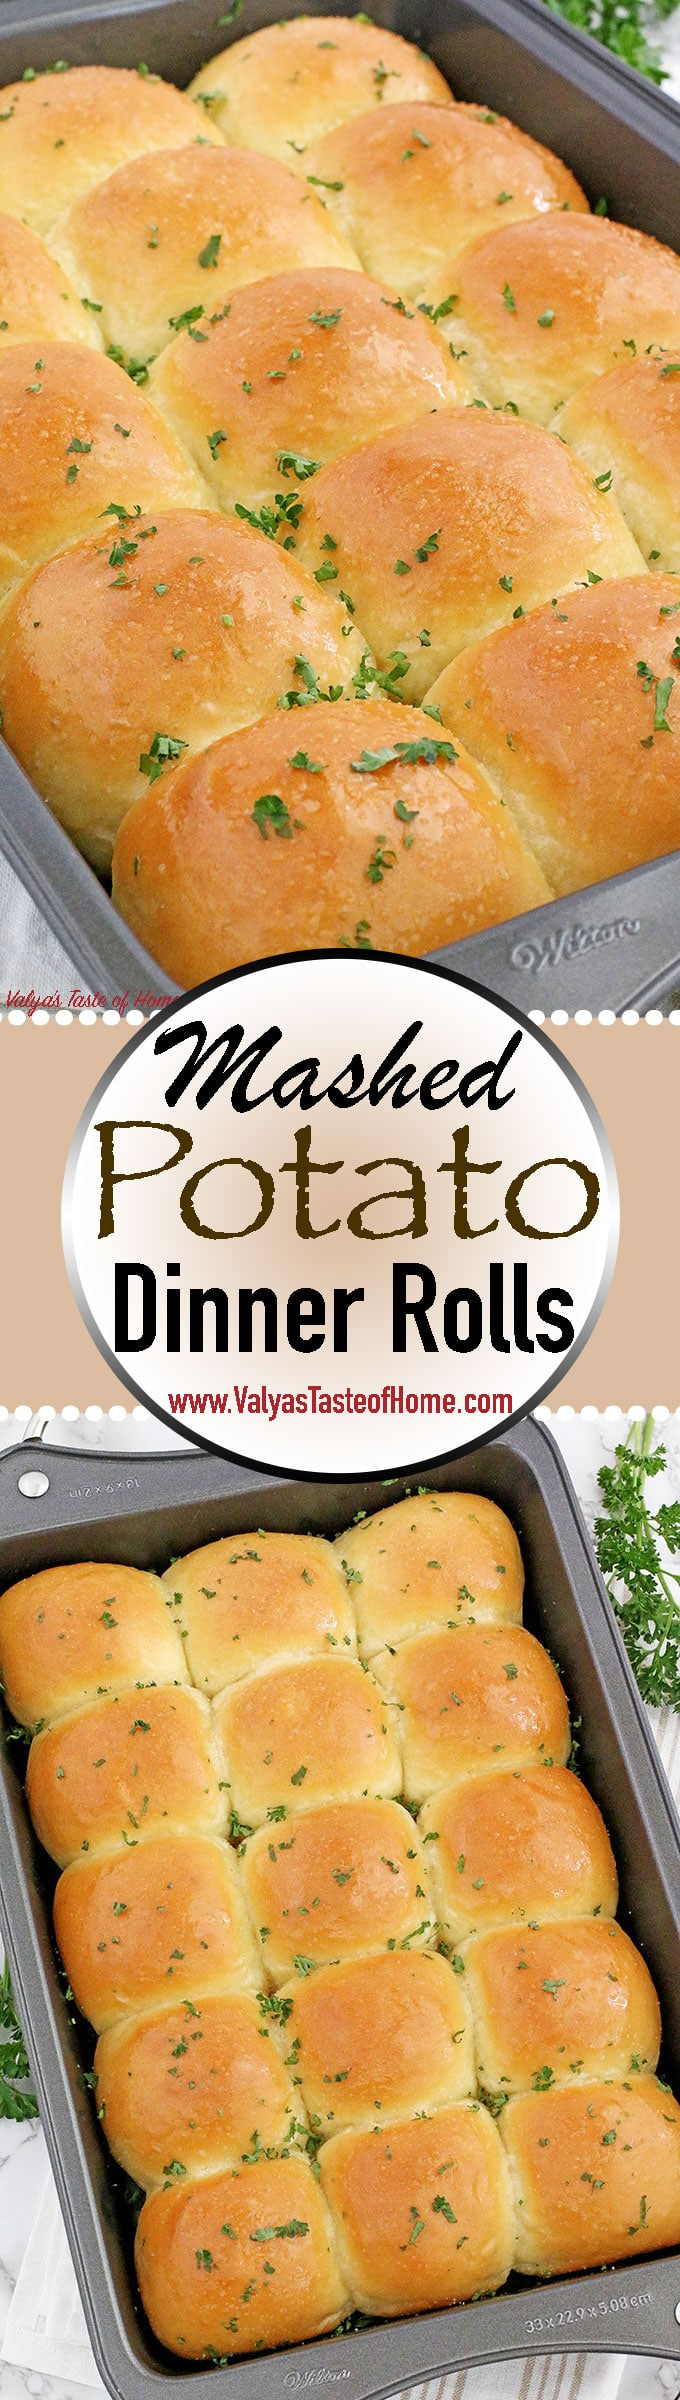 These super soft as a brand-new pillow Mashed Potato Dinner Rolls are comforting, flavorful, light, tender, fluffy and absolutely amazing! #mashedpotatoesdinnerrolls #dinnerrolls #easyrecipe #valyastasteofhome